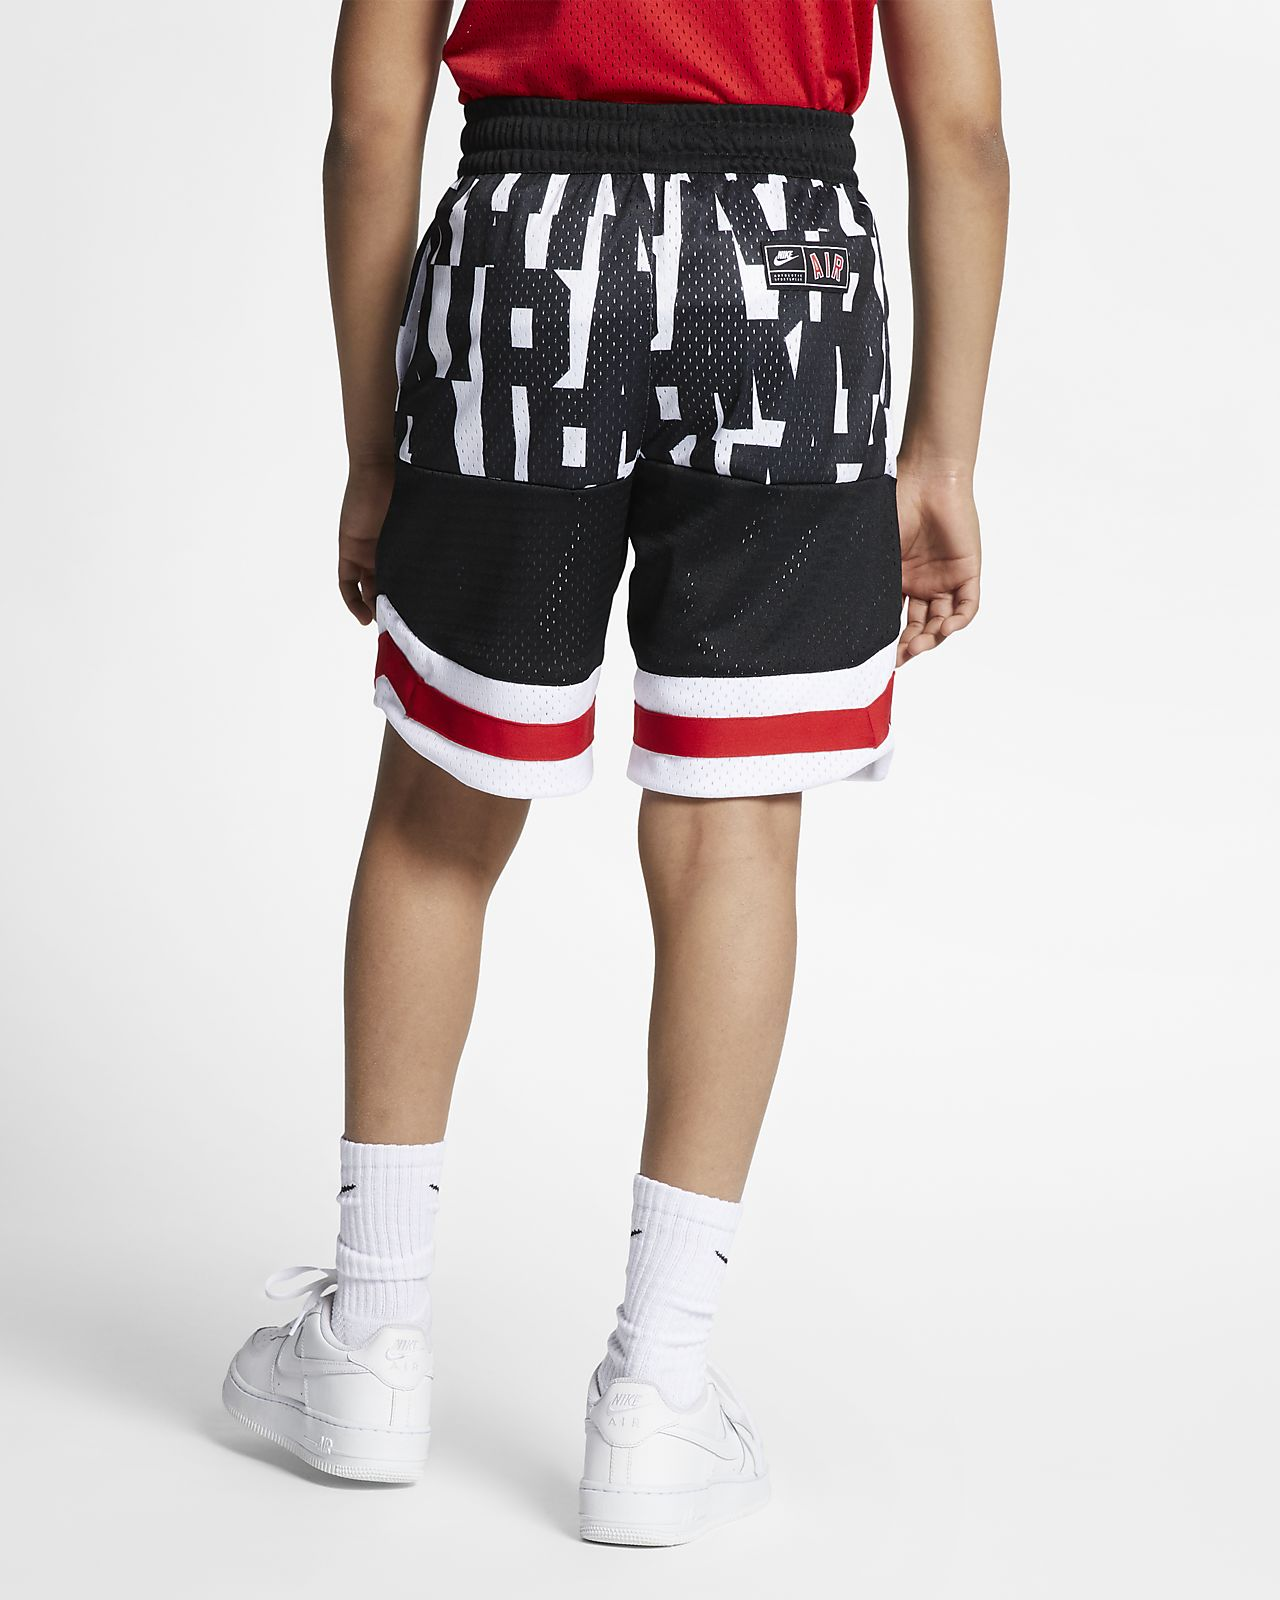 8dc8fc1bae7 Nike Air Big Kids' (Boy's) Mesh Shorts. Nike.com